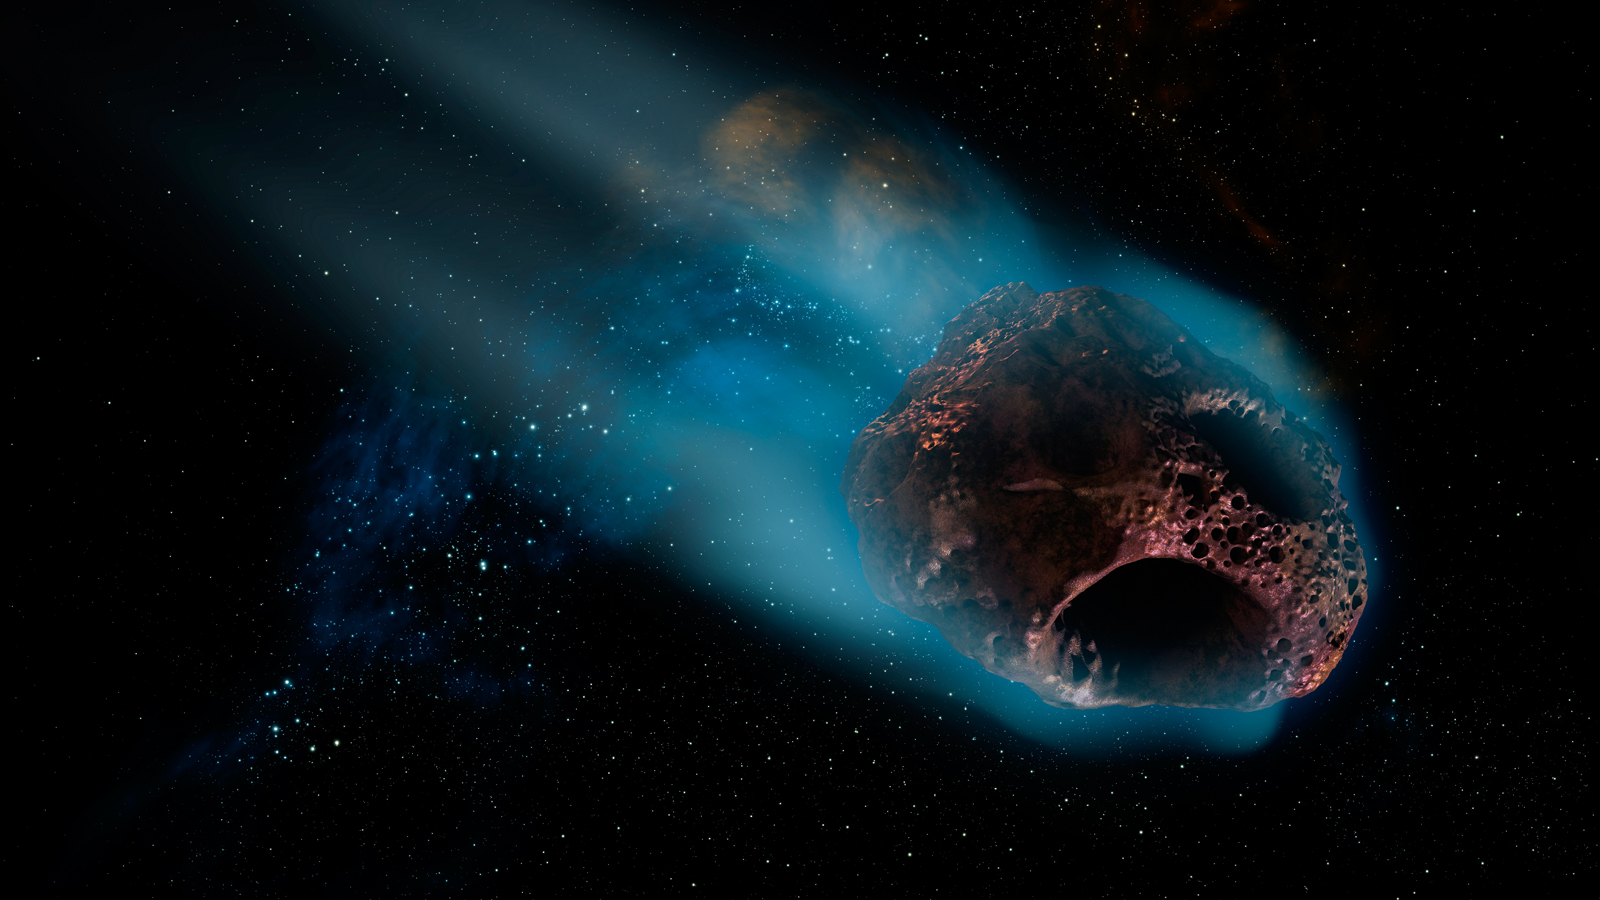 Opportunities in Mining Asteroids - Accenture